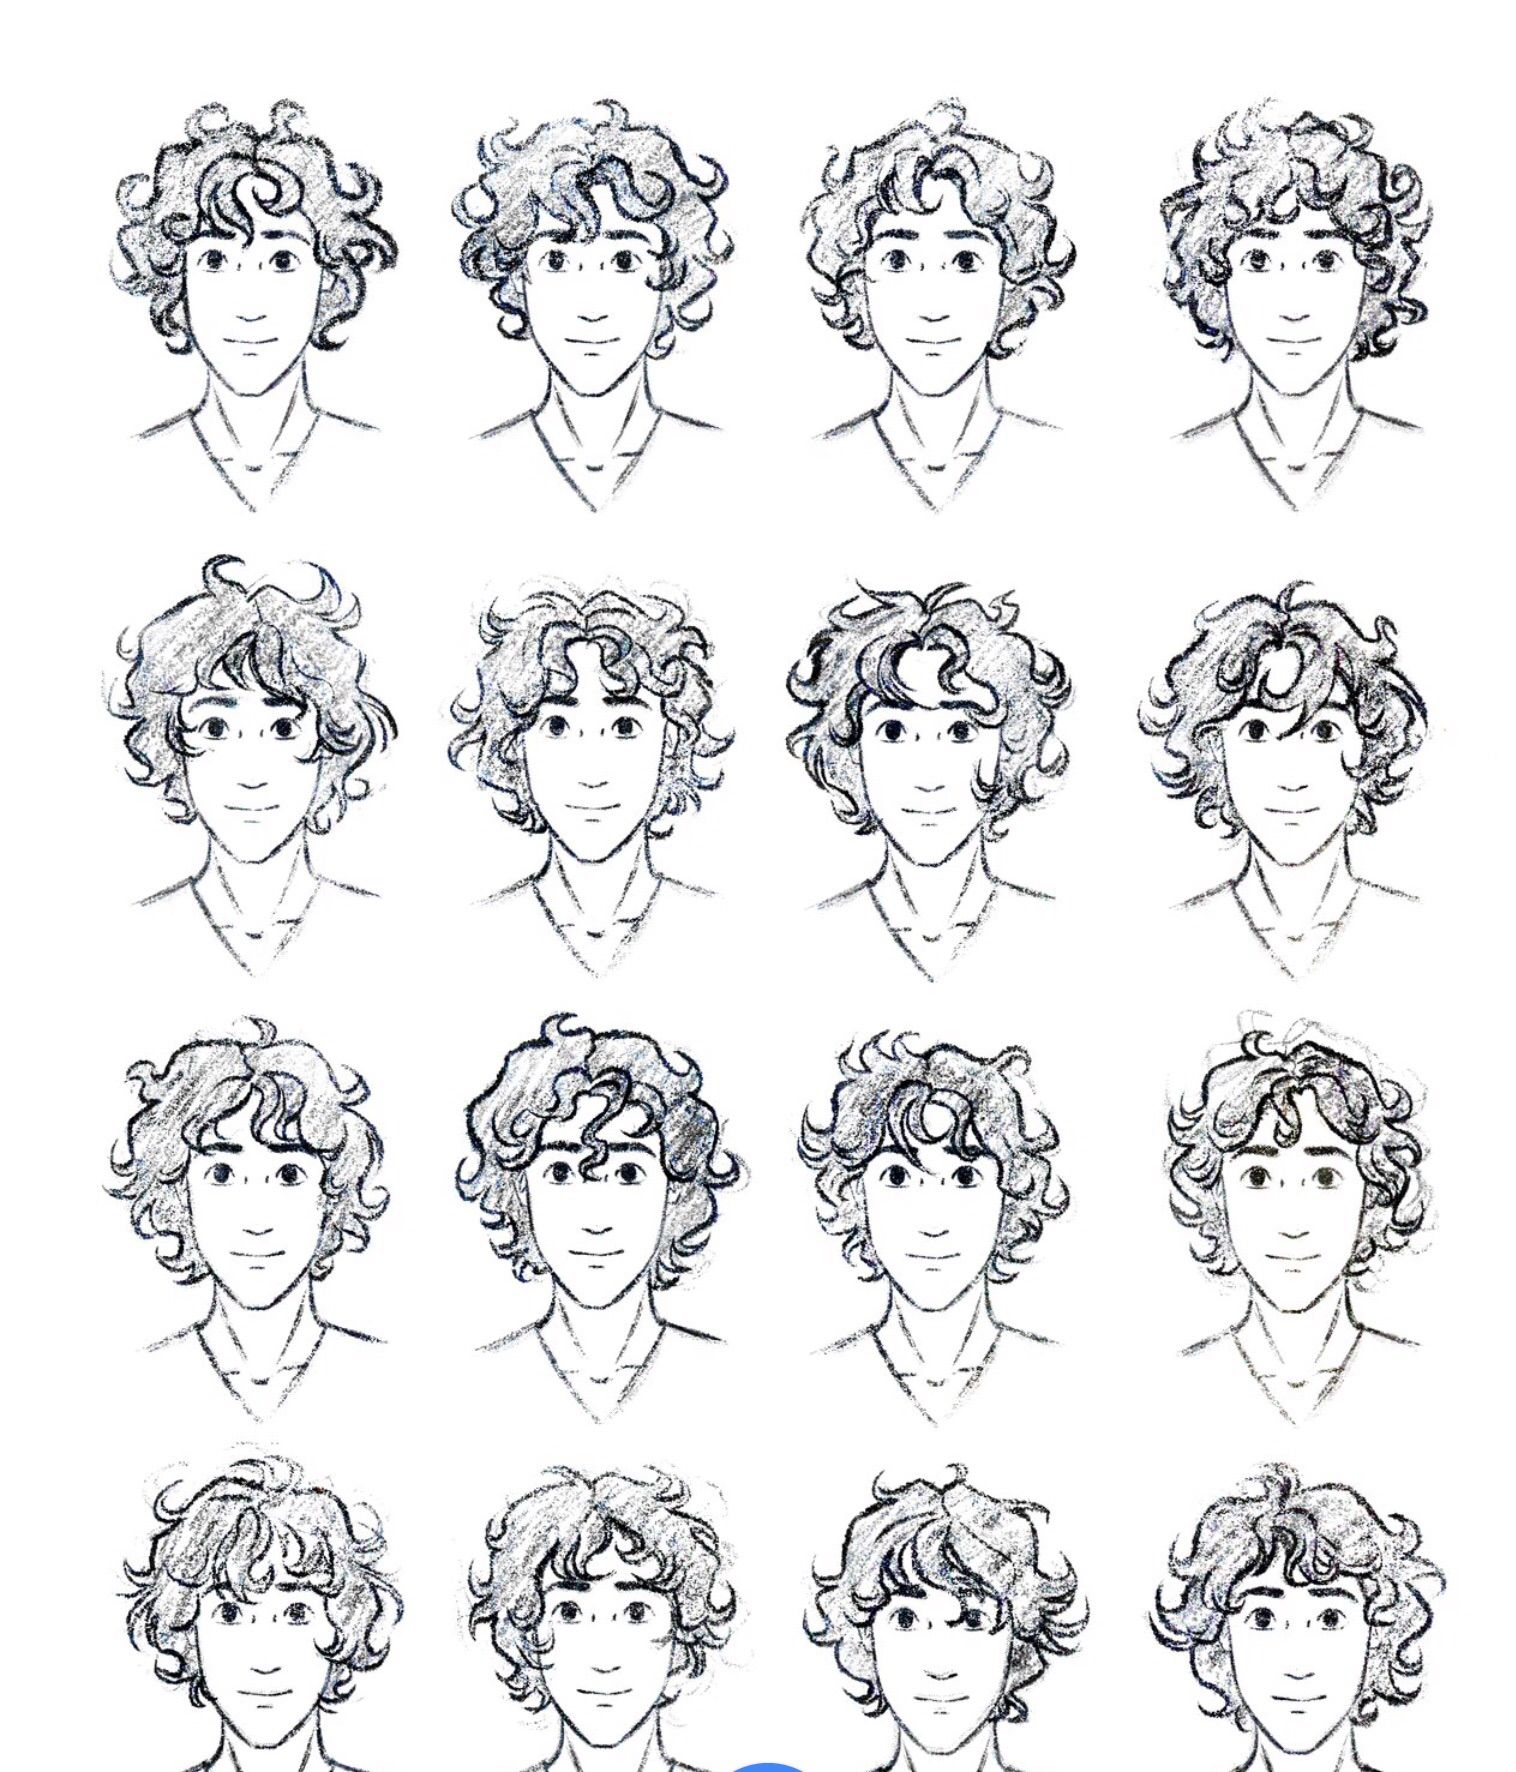 These Are Some Examples Of Guys With Curly Hair If You Want To Learn How To Draw Some Curly Hair Drawing Boy Hair Drawing Hair Sketch